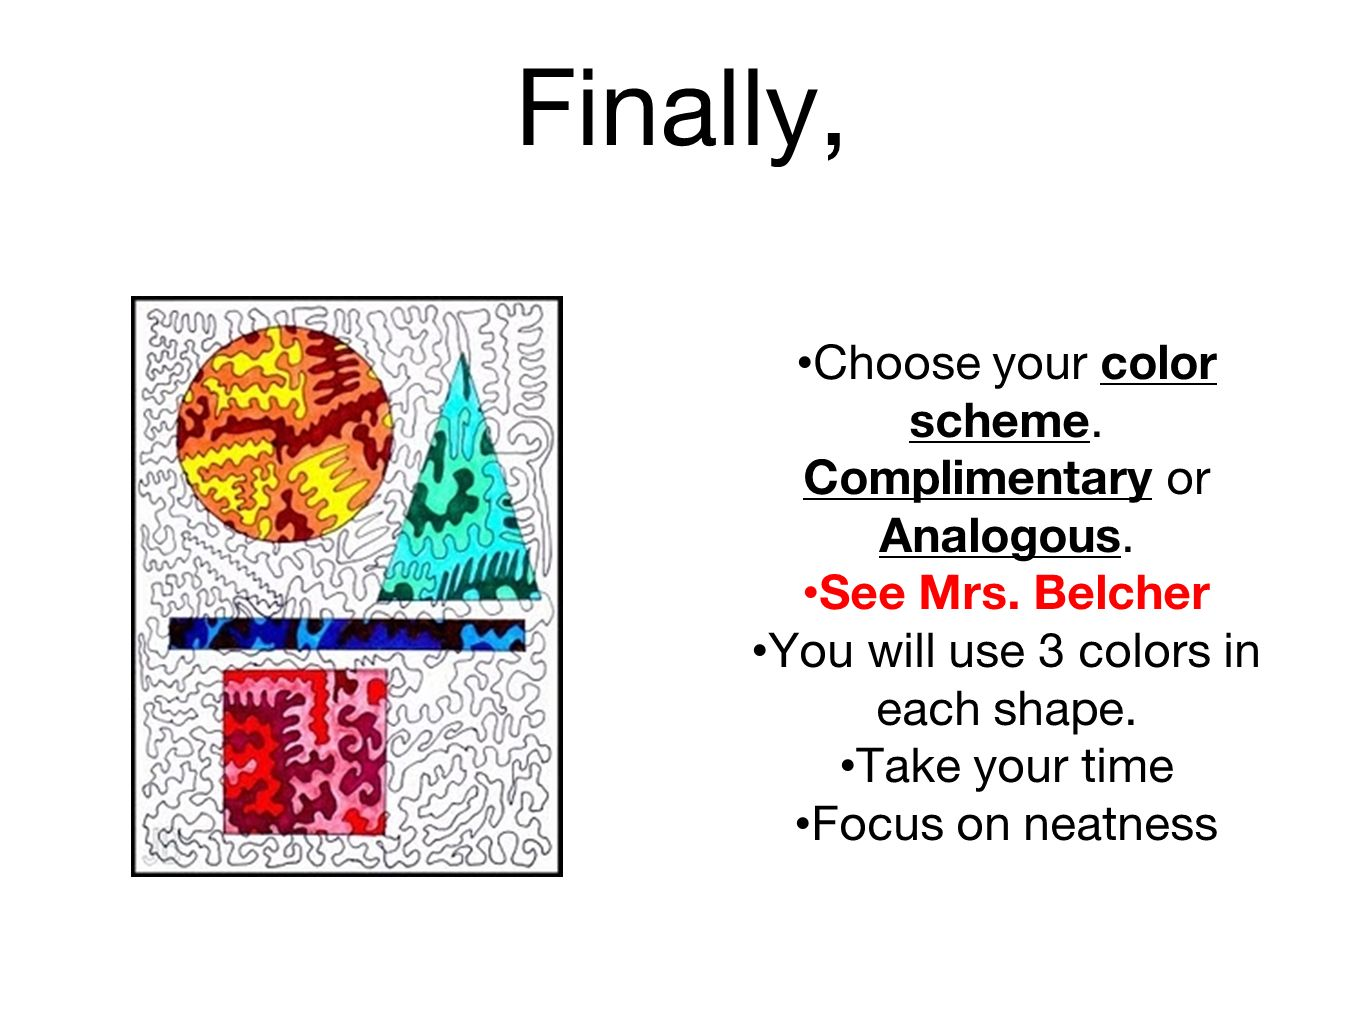 Finally, Choose your color scheme. Complimentary or Analogous.